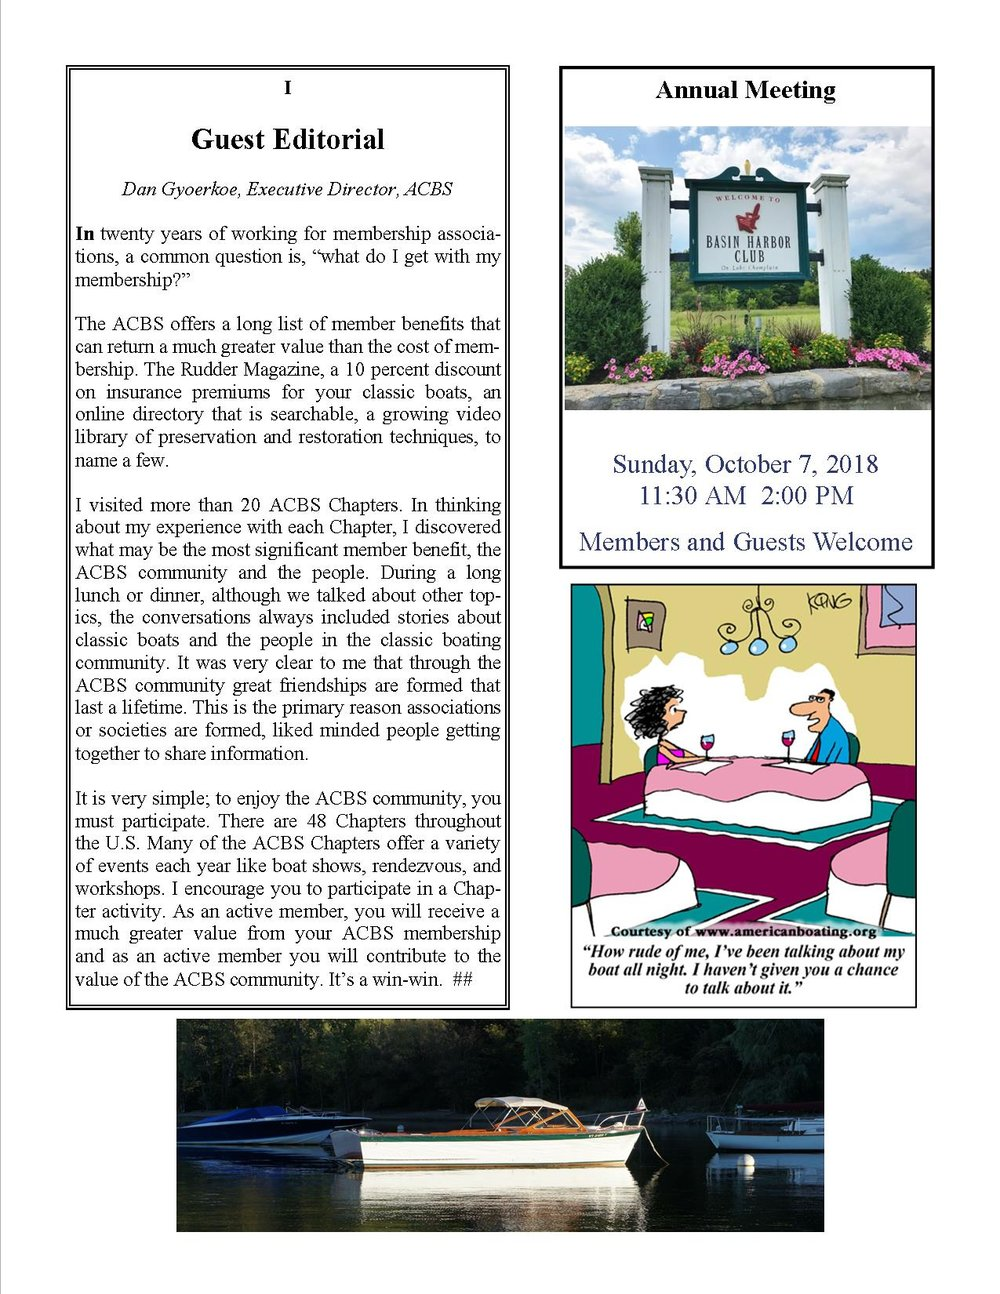 LCACBS Newsletter 9.1.18 Page 2.jpg